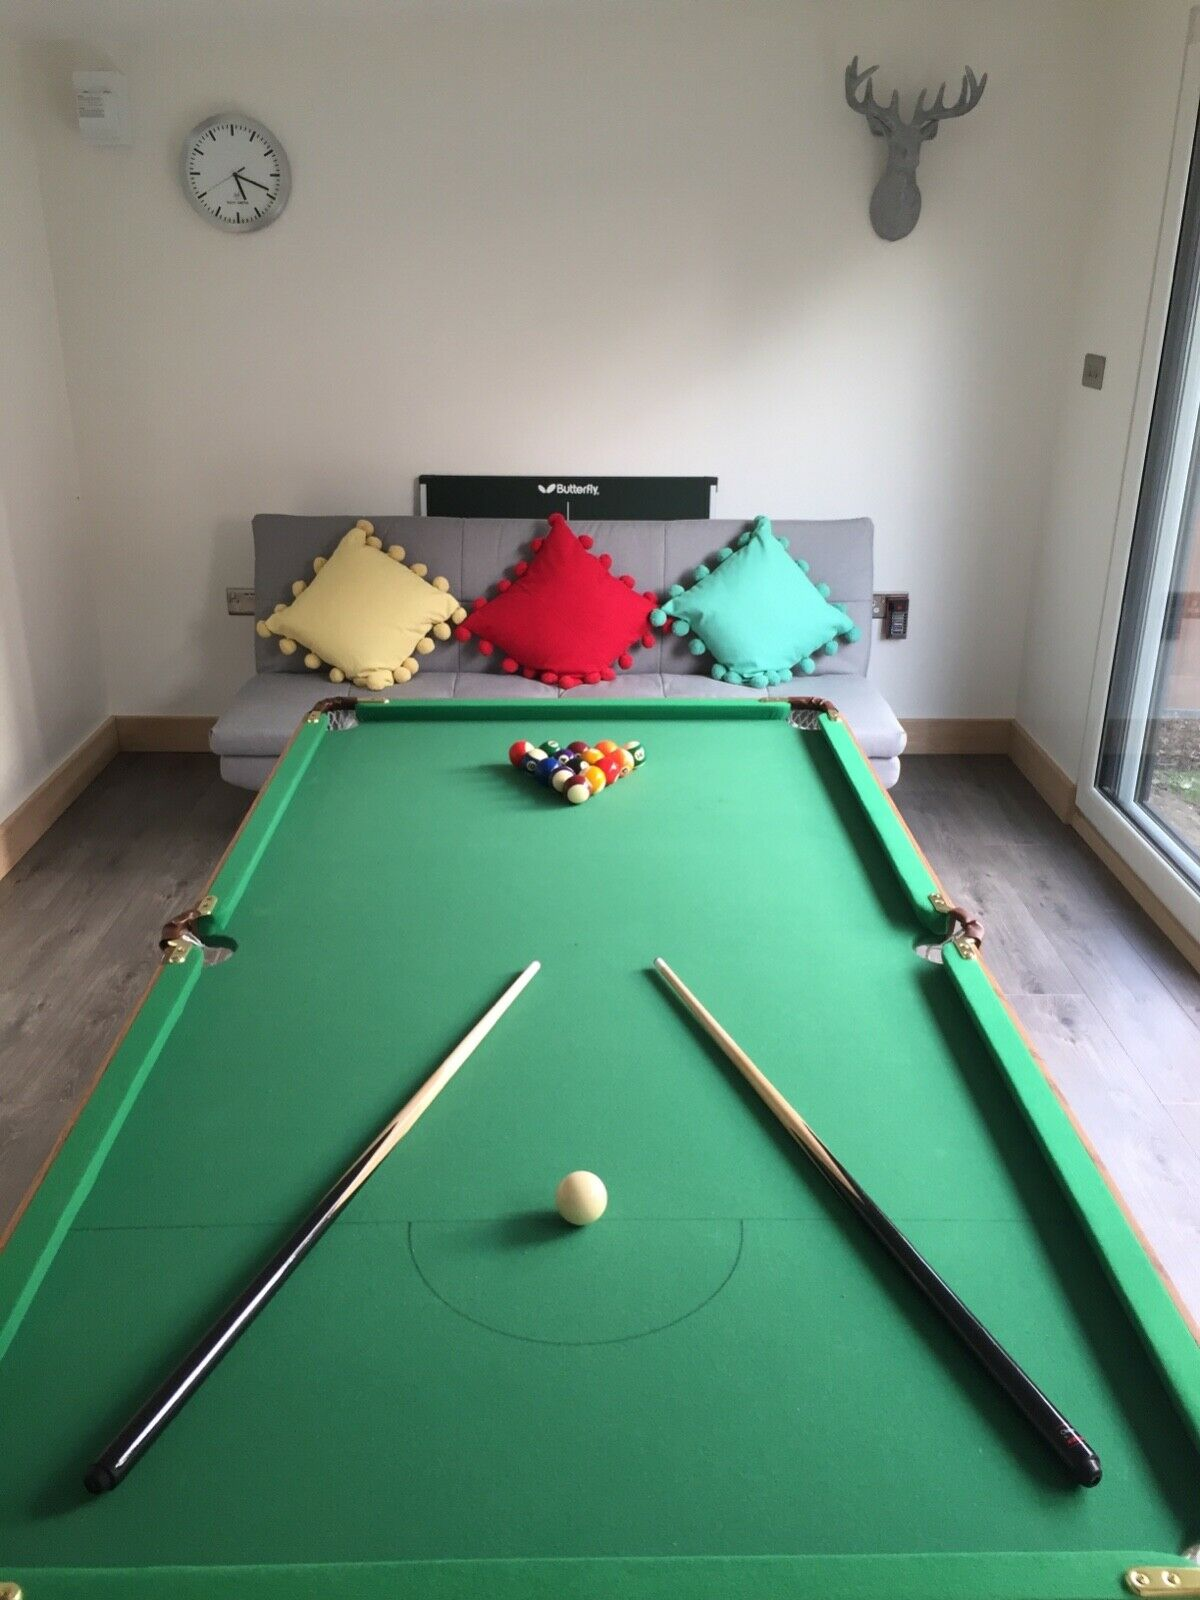 Excellent condition 6ft Folding Pool and Table Tennis Table